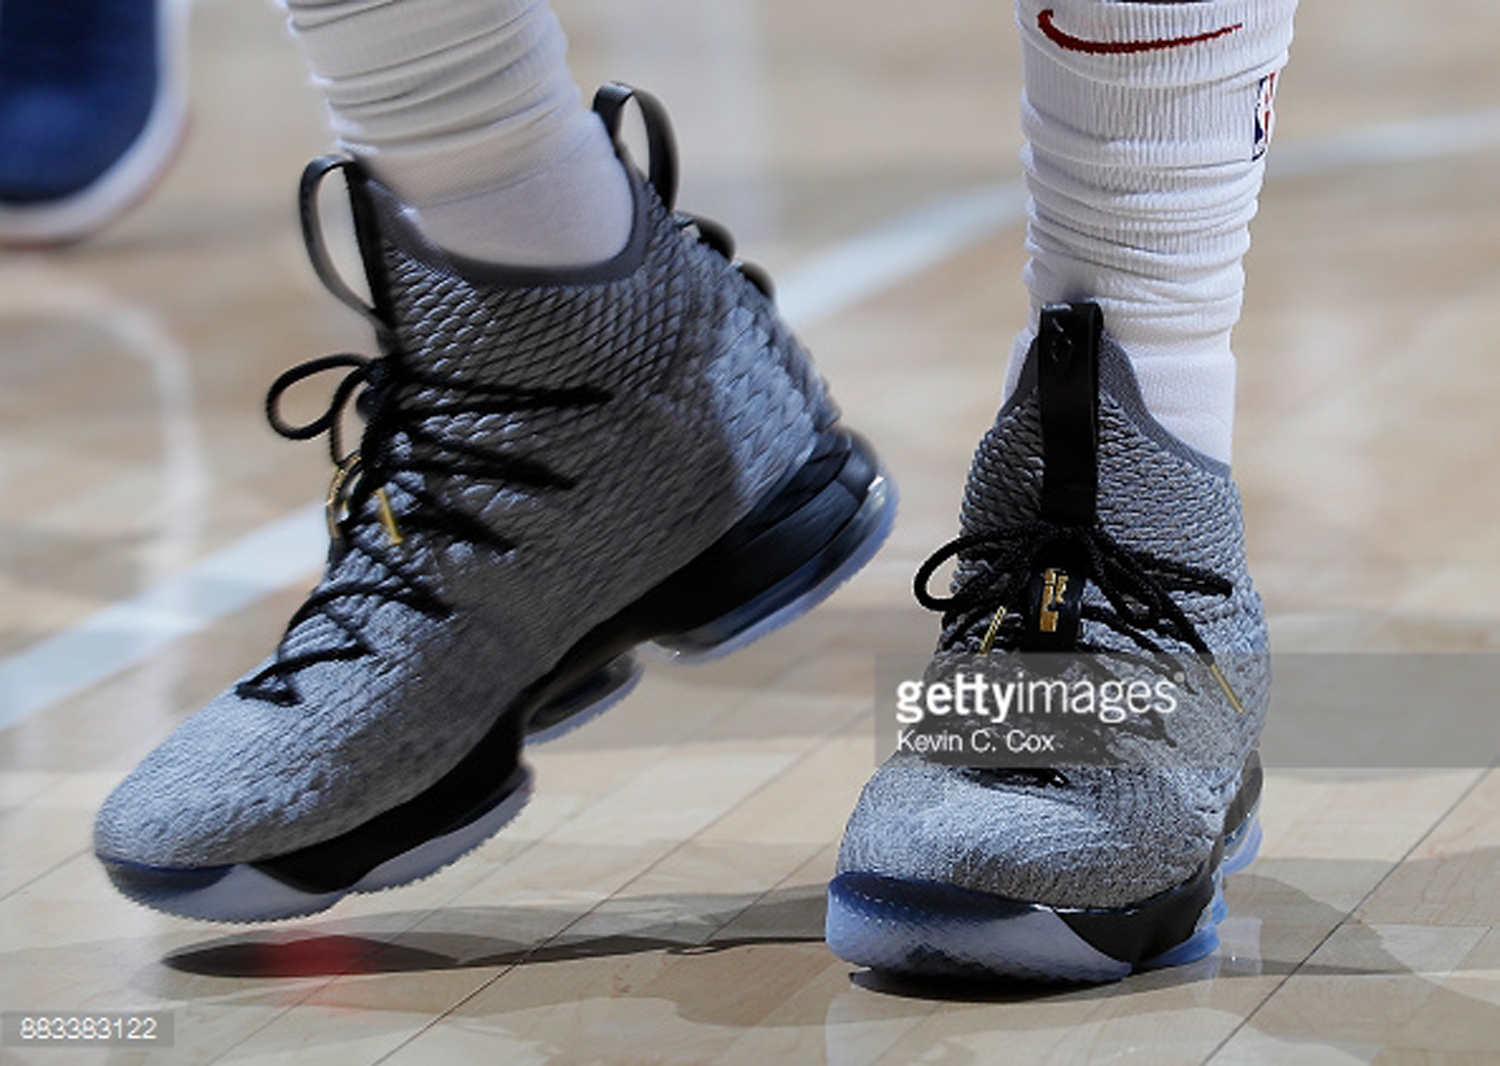 the best attitude 9c589 c30b0 Nike Adds Lateral Stability to LeBron James' LeBron 15 PE ...